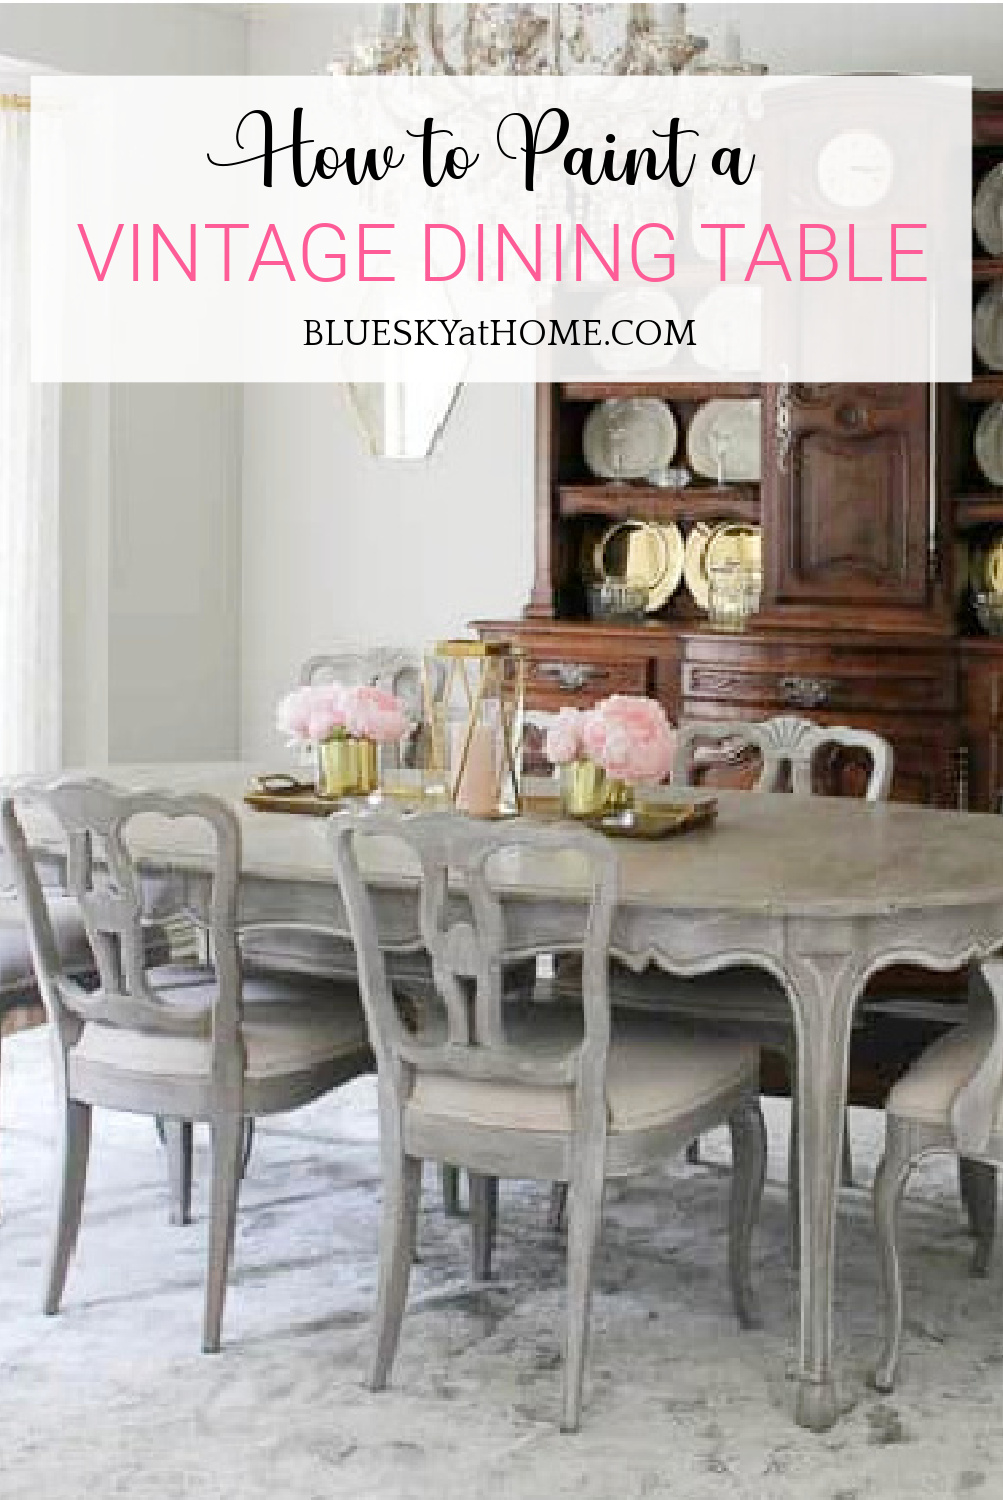 How To Paint A Vintage Dining Table, Vintage Dining Room Sets